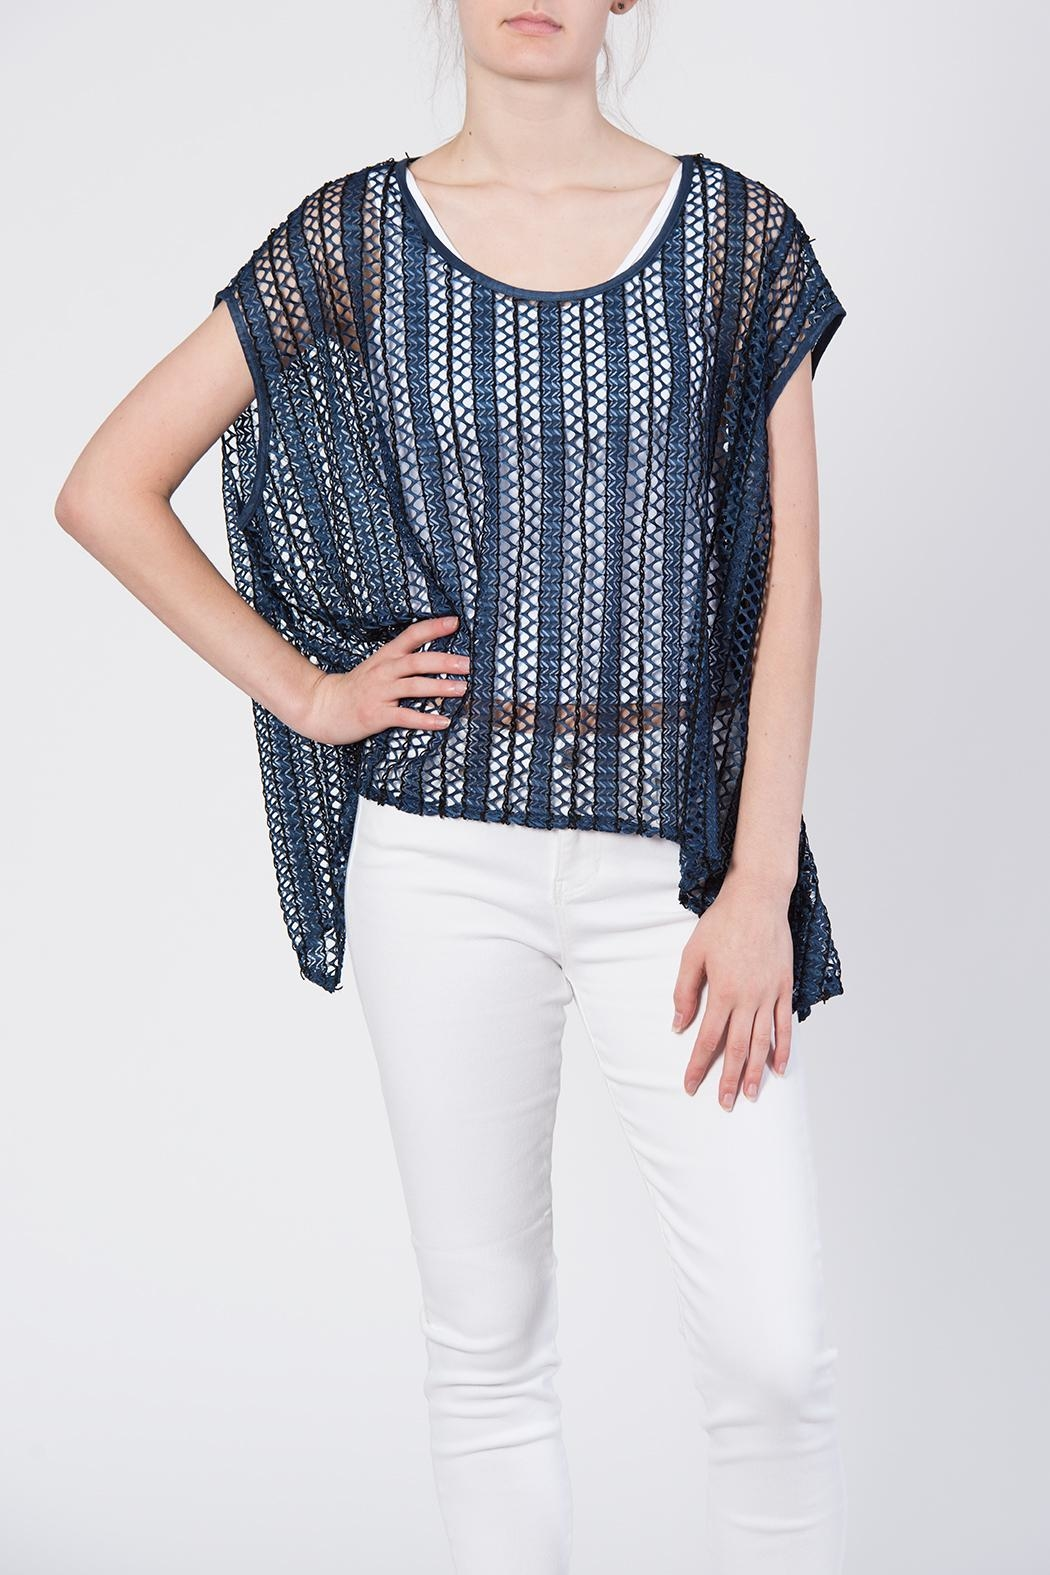 beulah Sheer Knit Top - Front Full Image